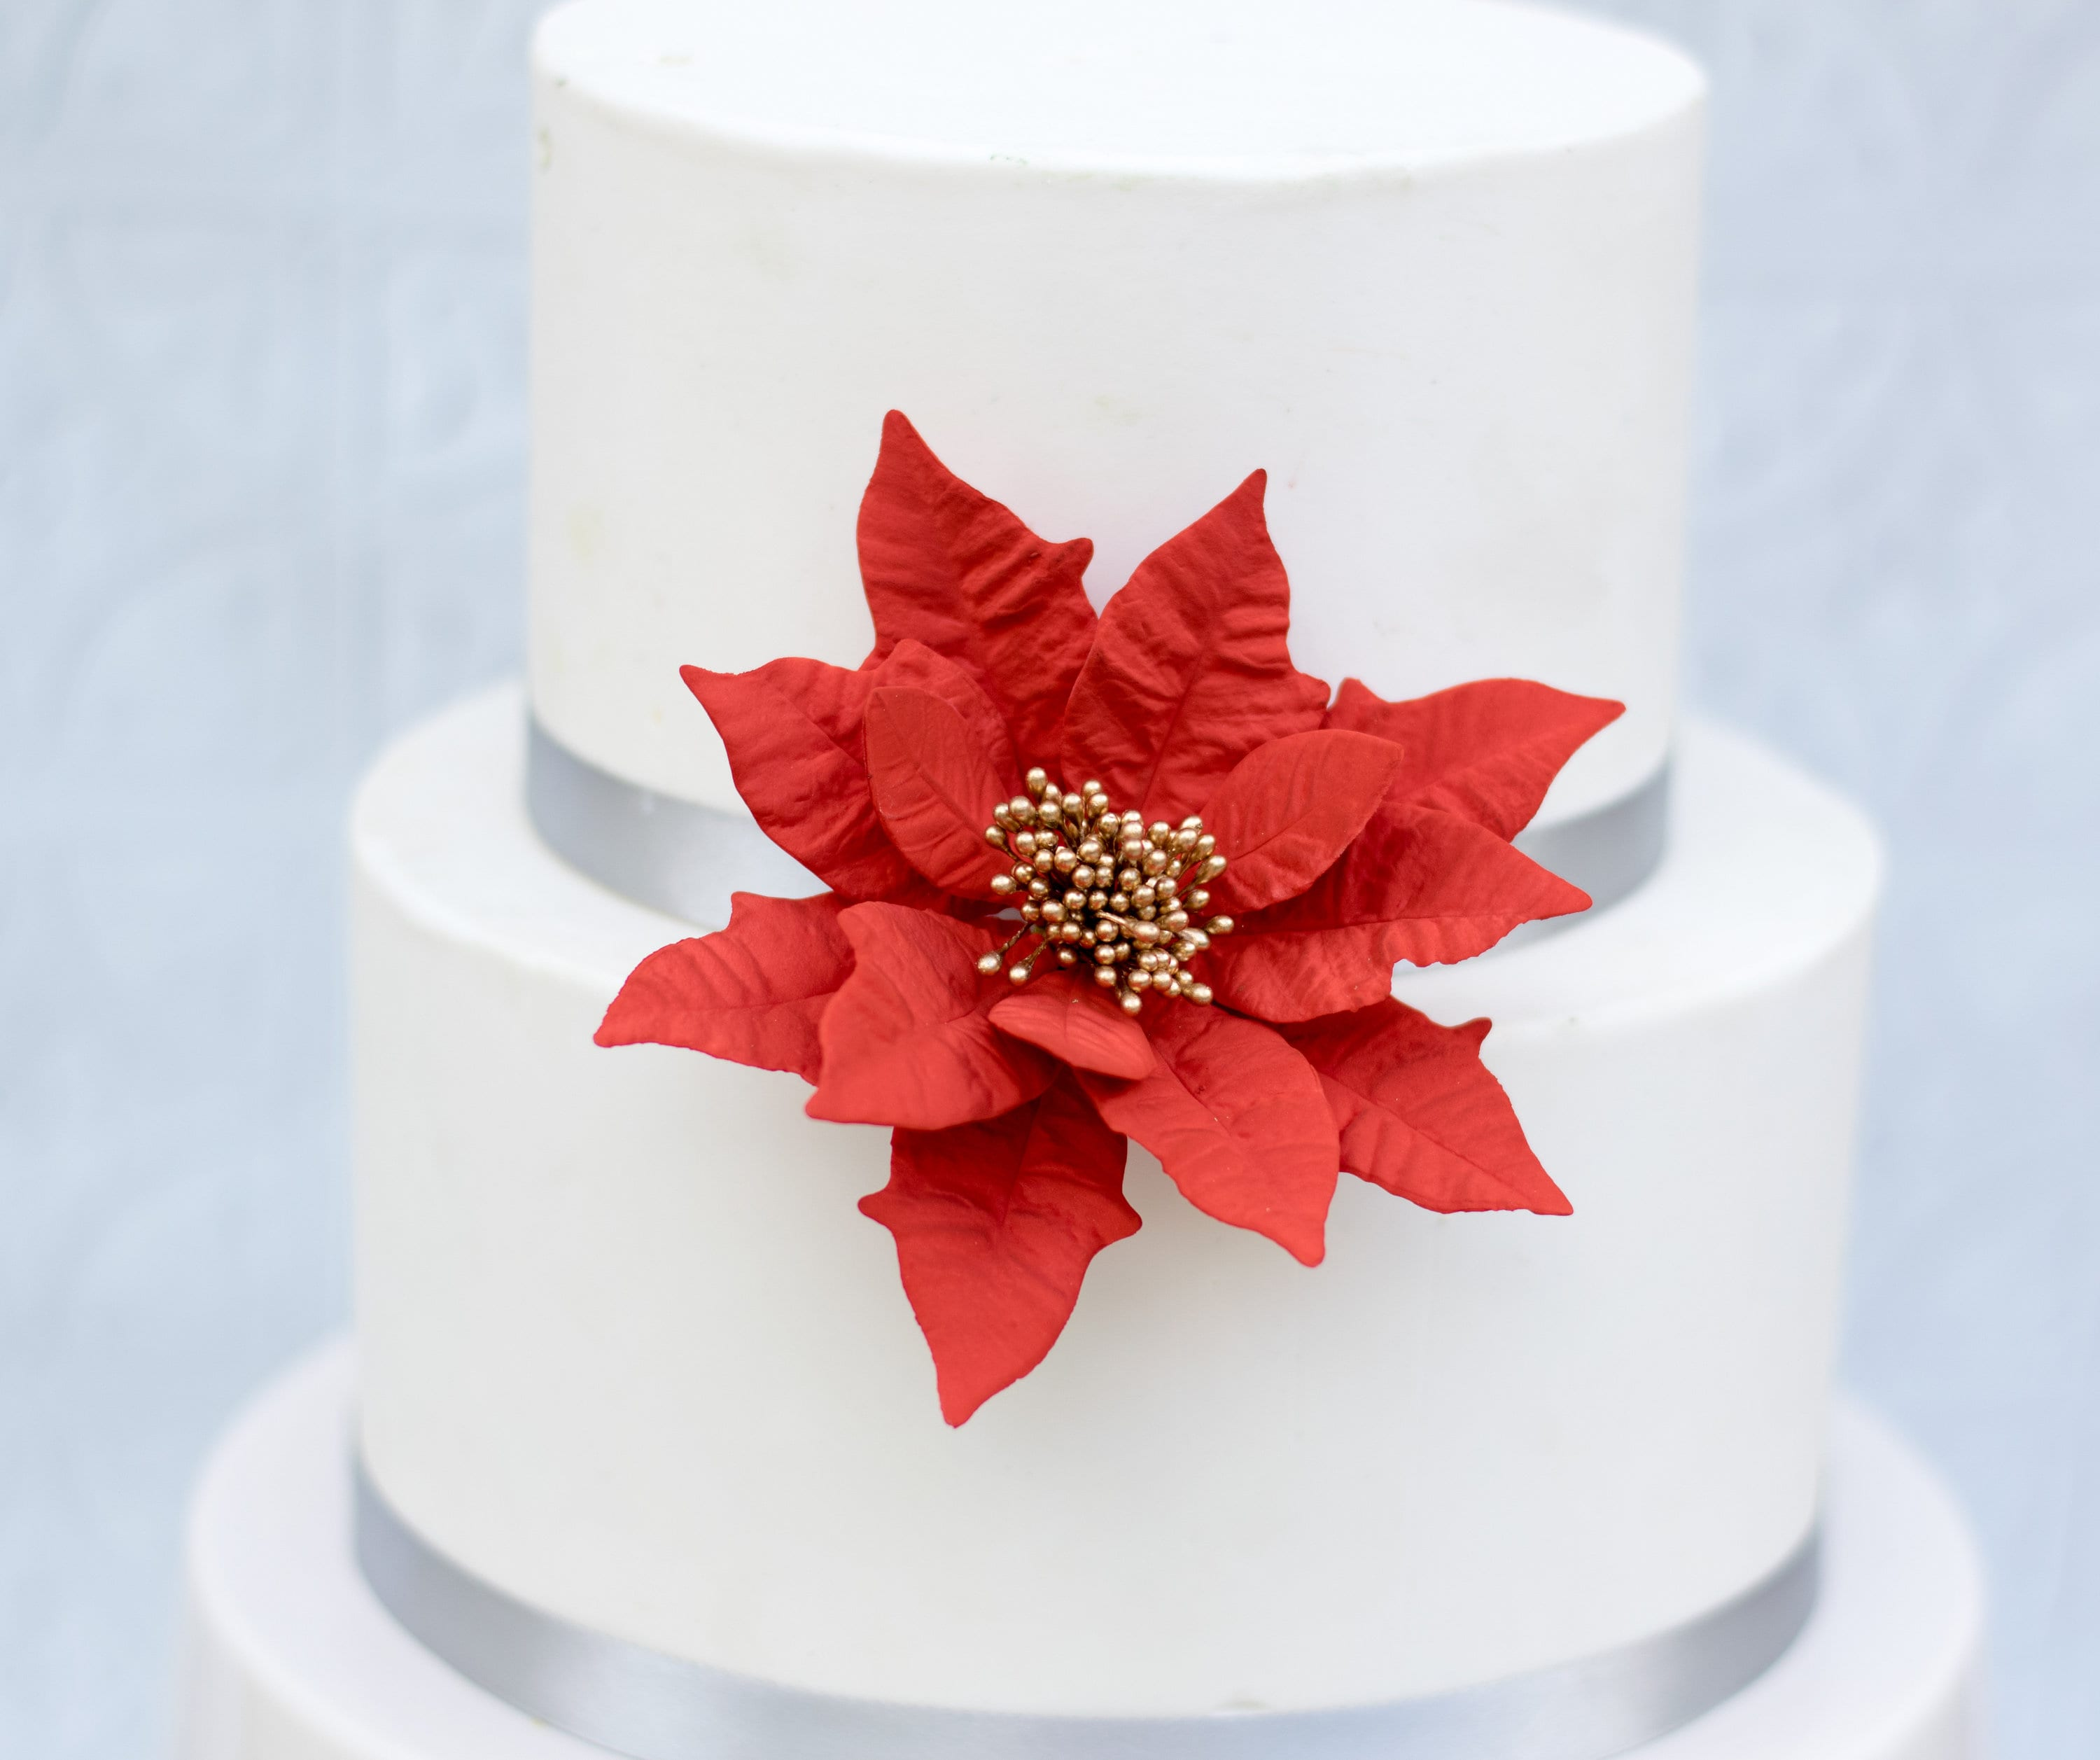 Christmas Wedding Cake Toppers.Gumpaste Poinsettia Sugar Flower In Red And Gold For